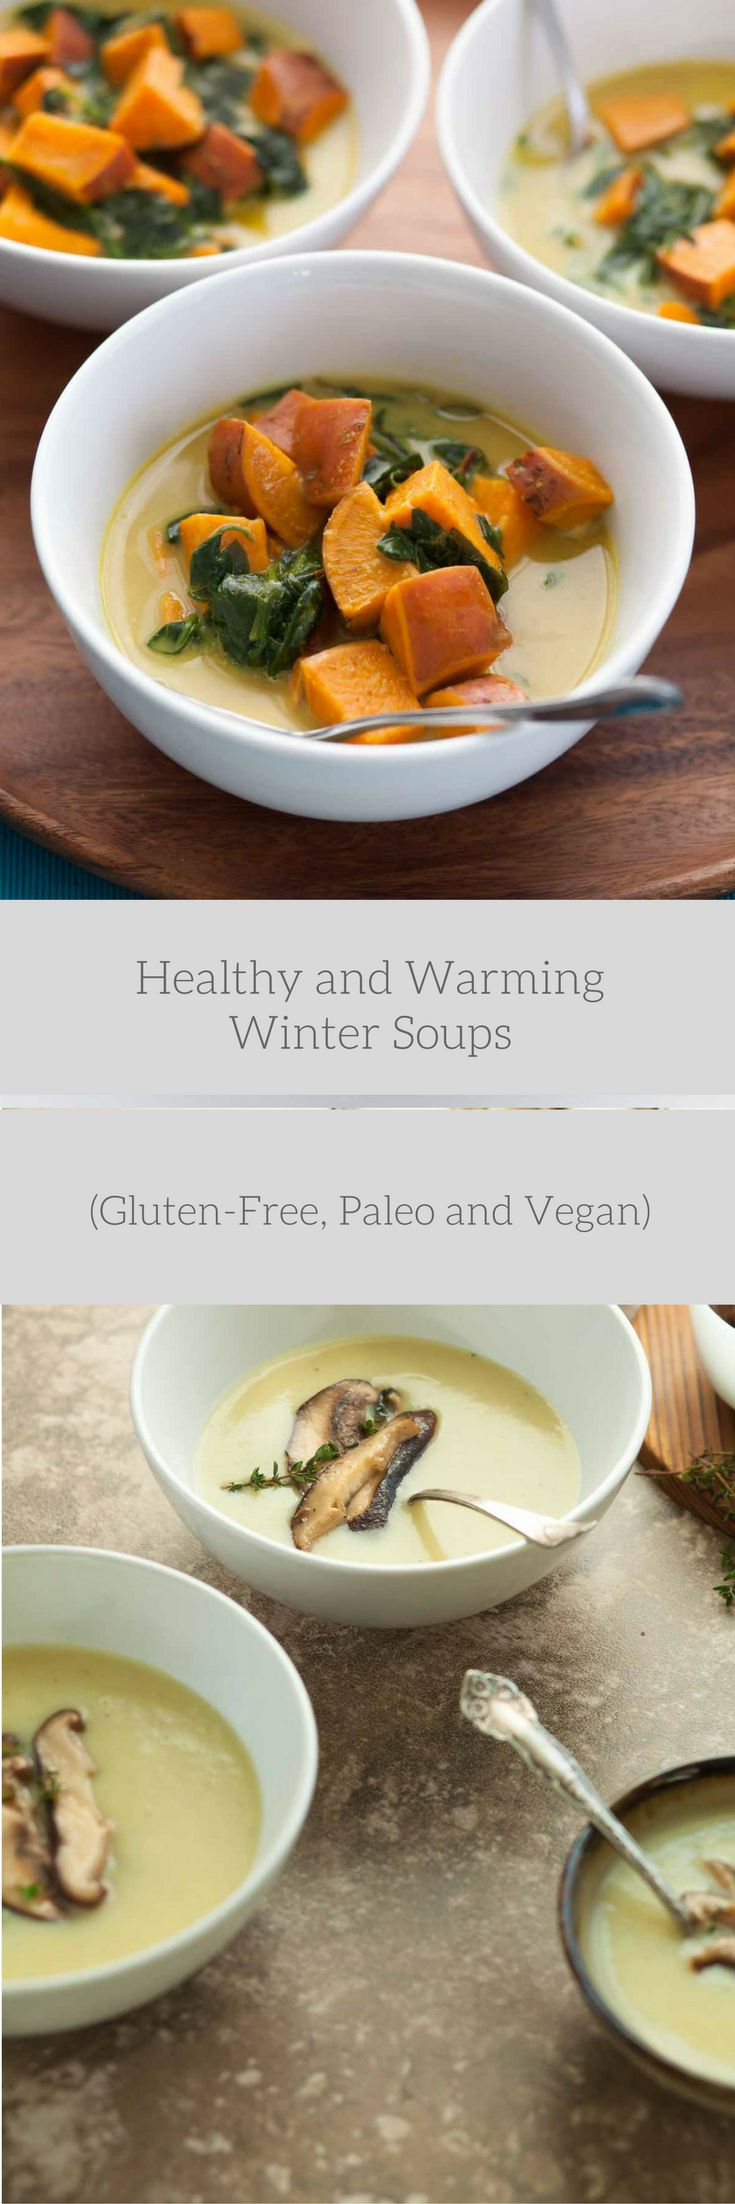 Warm up this winter with these vegetable-filled soups. As the holidays come to a close and winter begins, I find myself turning to soup. There's nothing quite as satisfying as a piping hot bowl of …